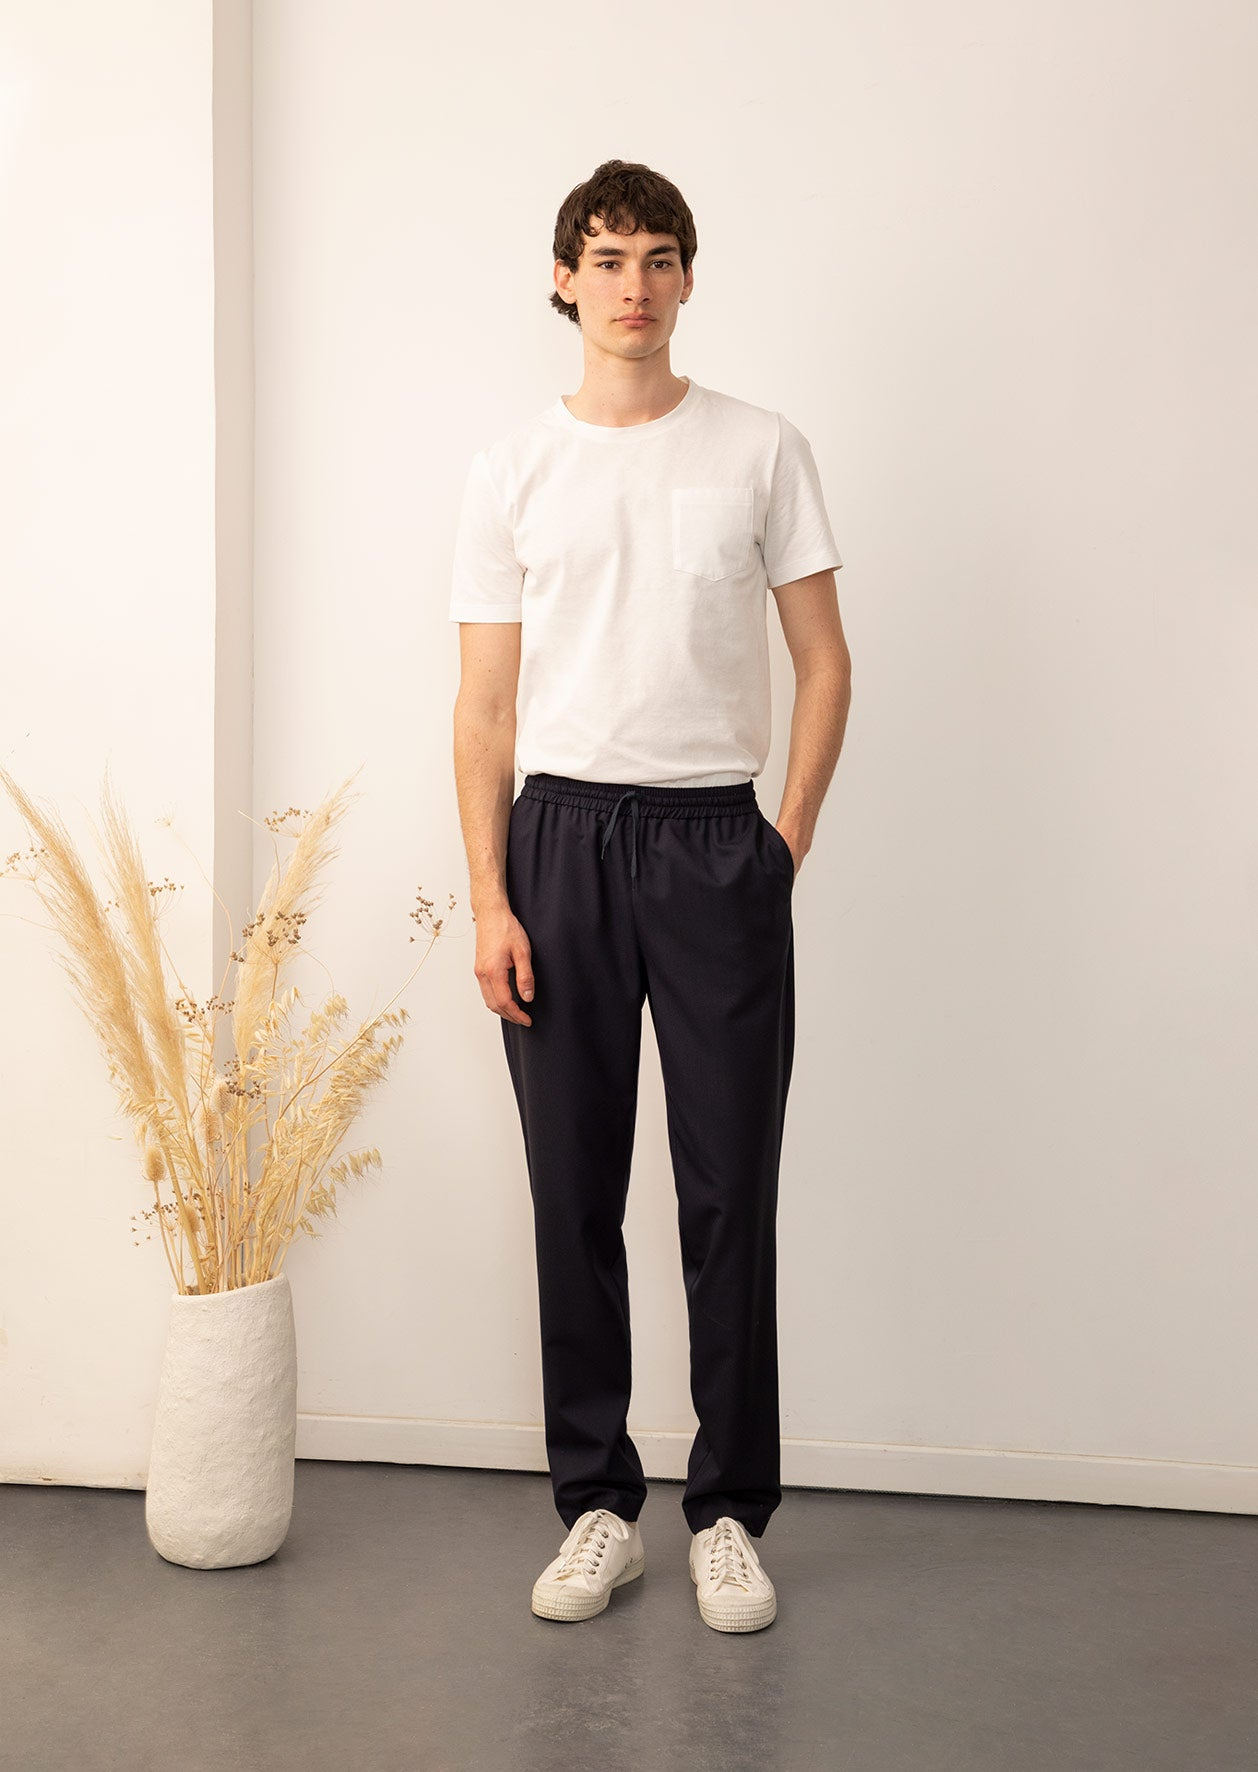 De Bonne Facture - Permanent - Easy trousers - Merino wool - Navy